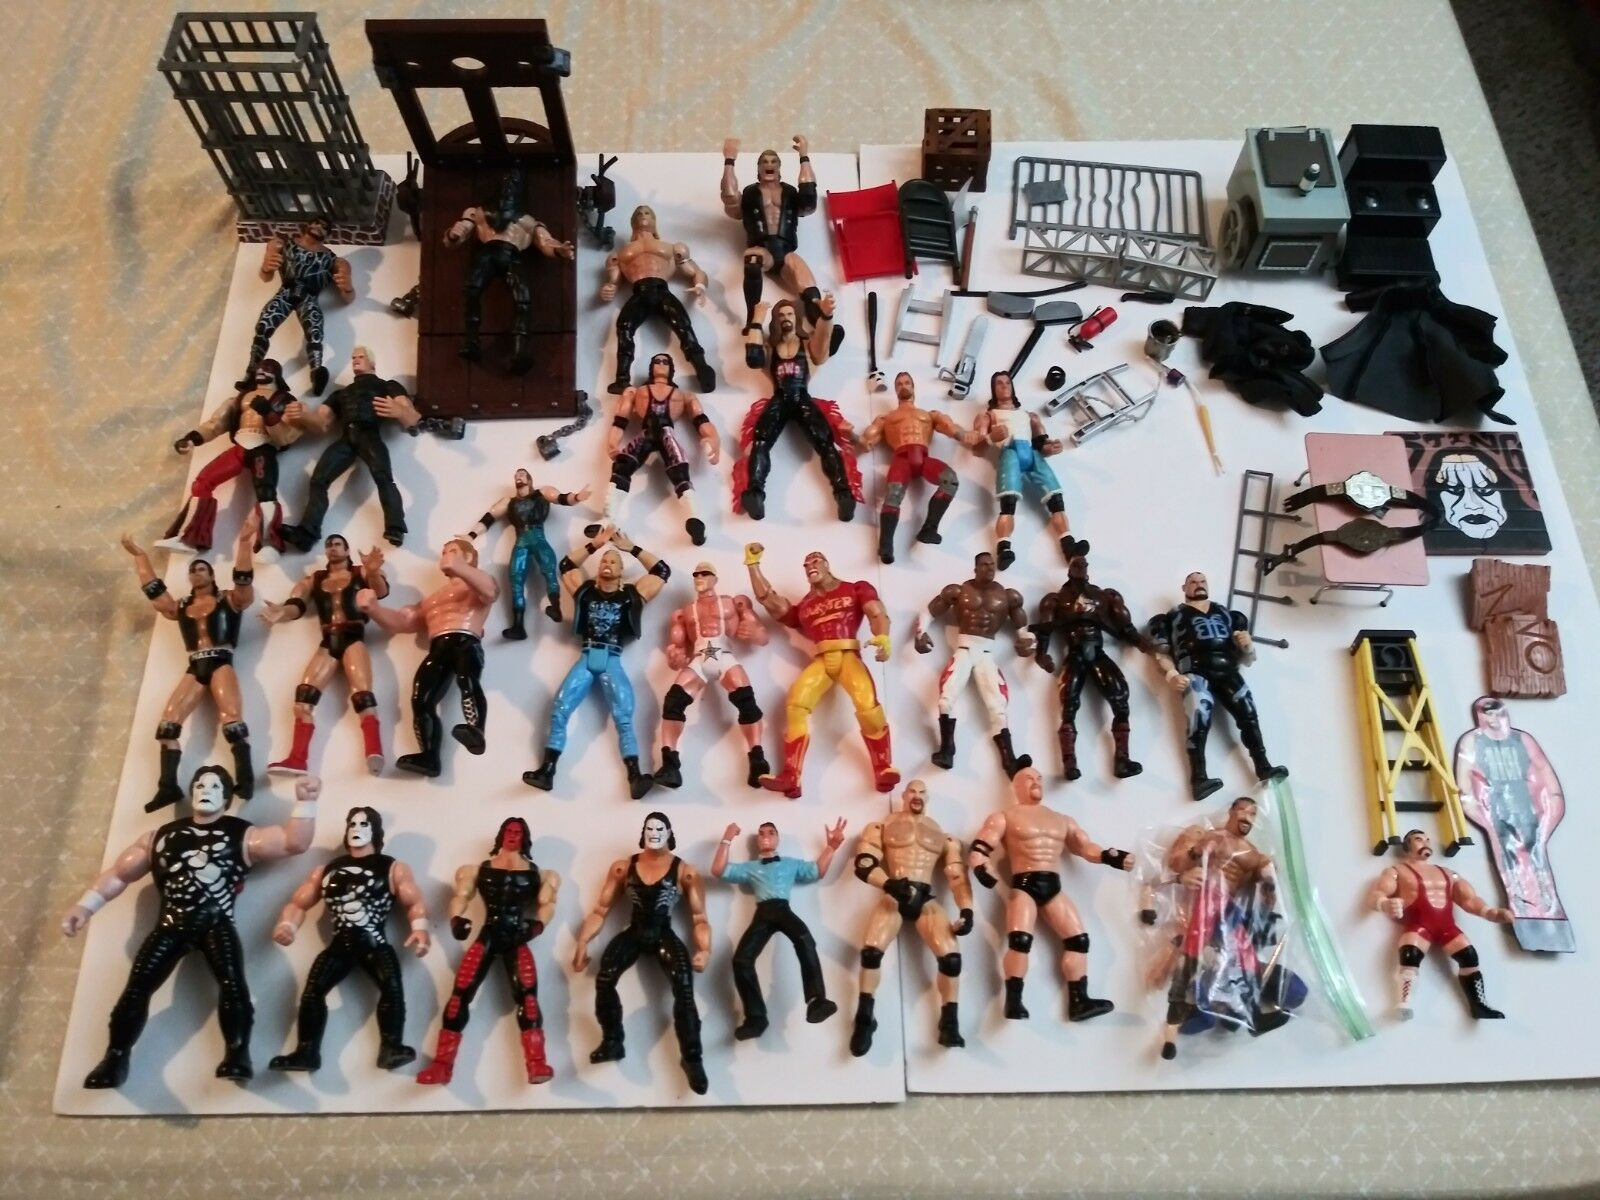 WCW FIGURE LOT, STING, HOGAN, GOLDBERG, NASH & MORE W/ACCESSORIES MARVEL WWF WWE